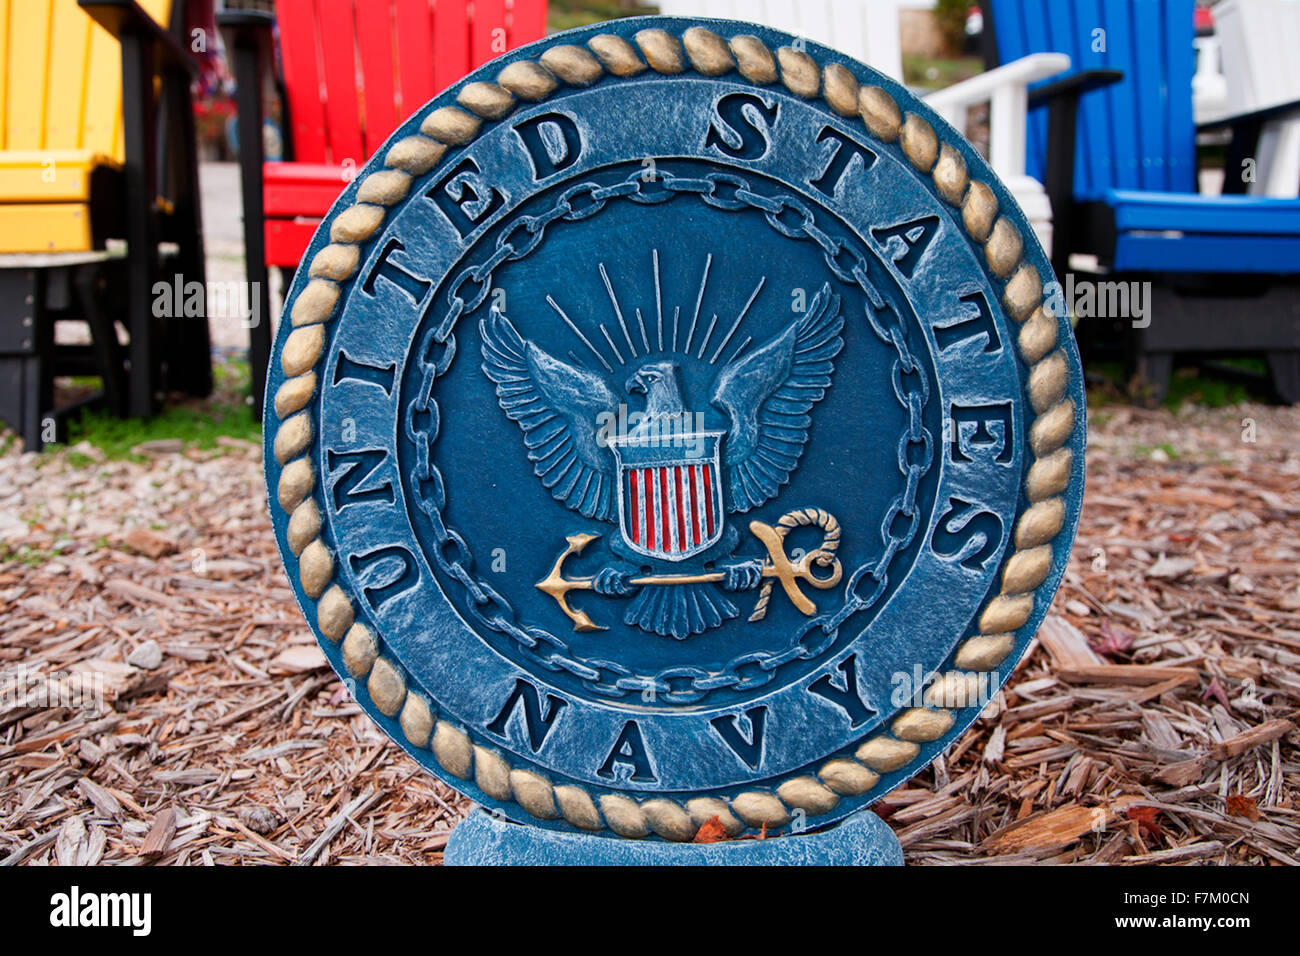 Circhular symbol and logo for U.S. Navy, roadside art found in Grafton, IL. - Stock Image